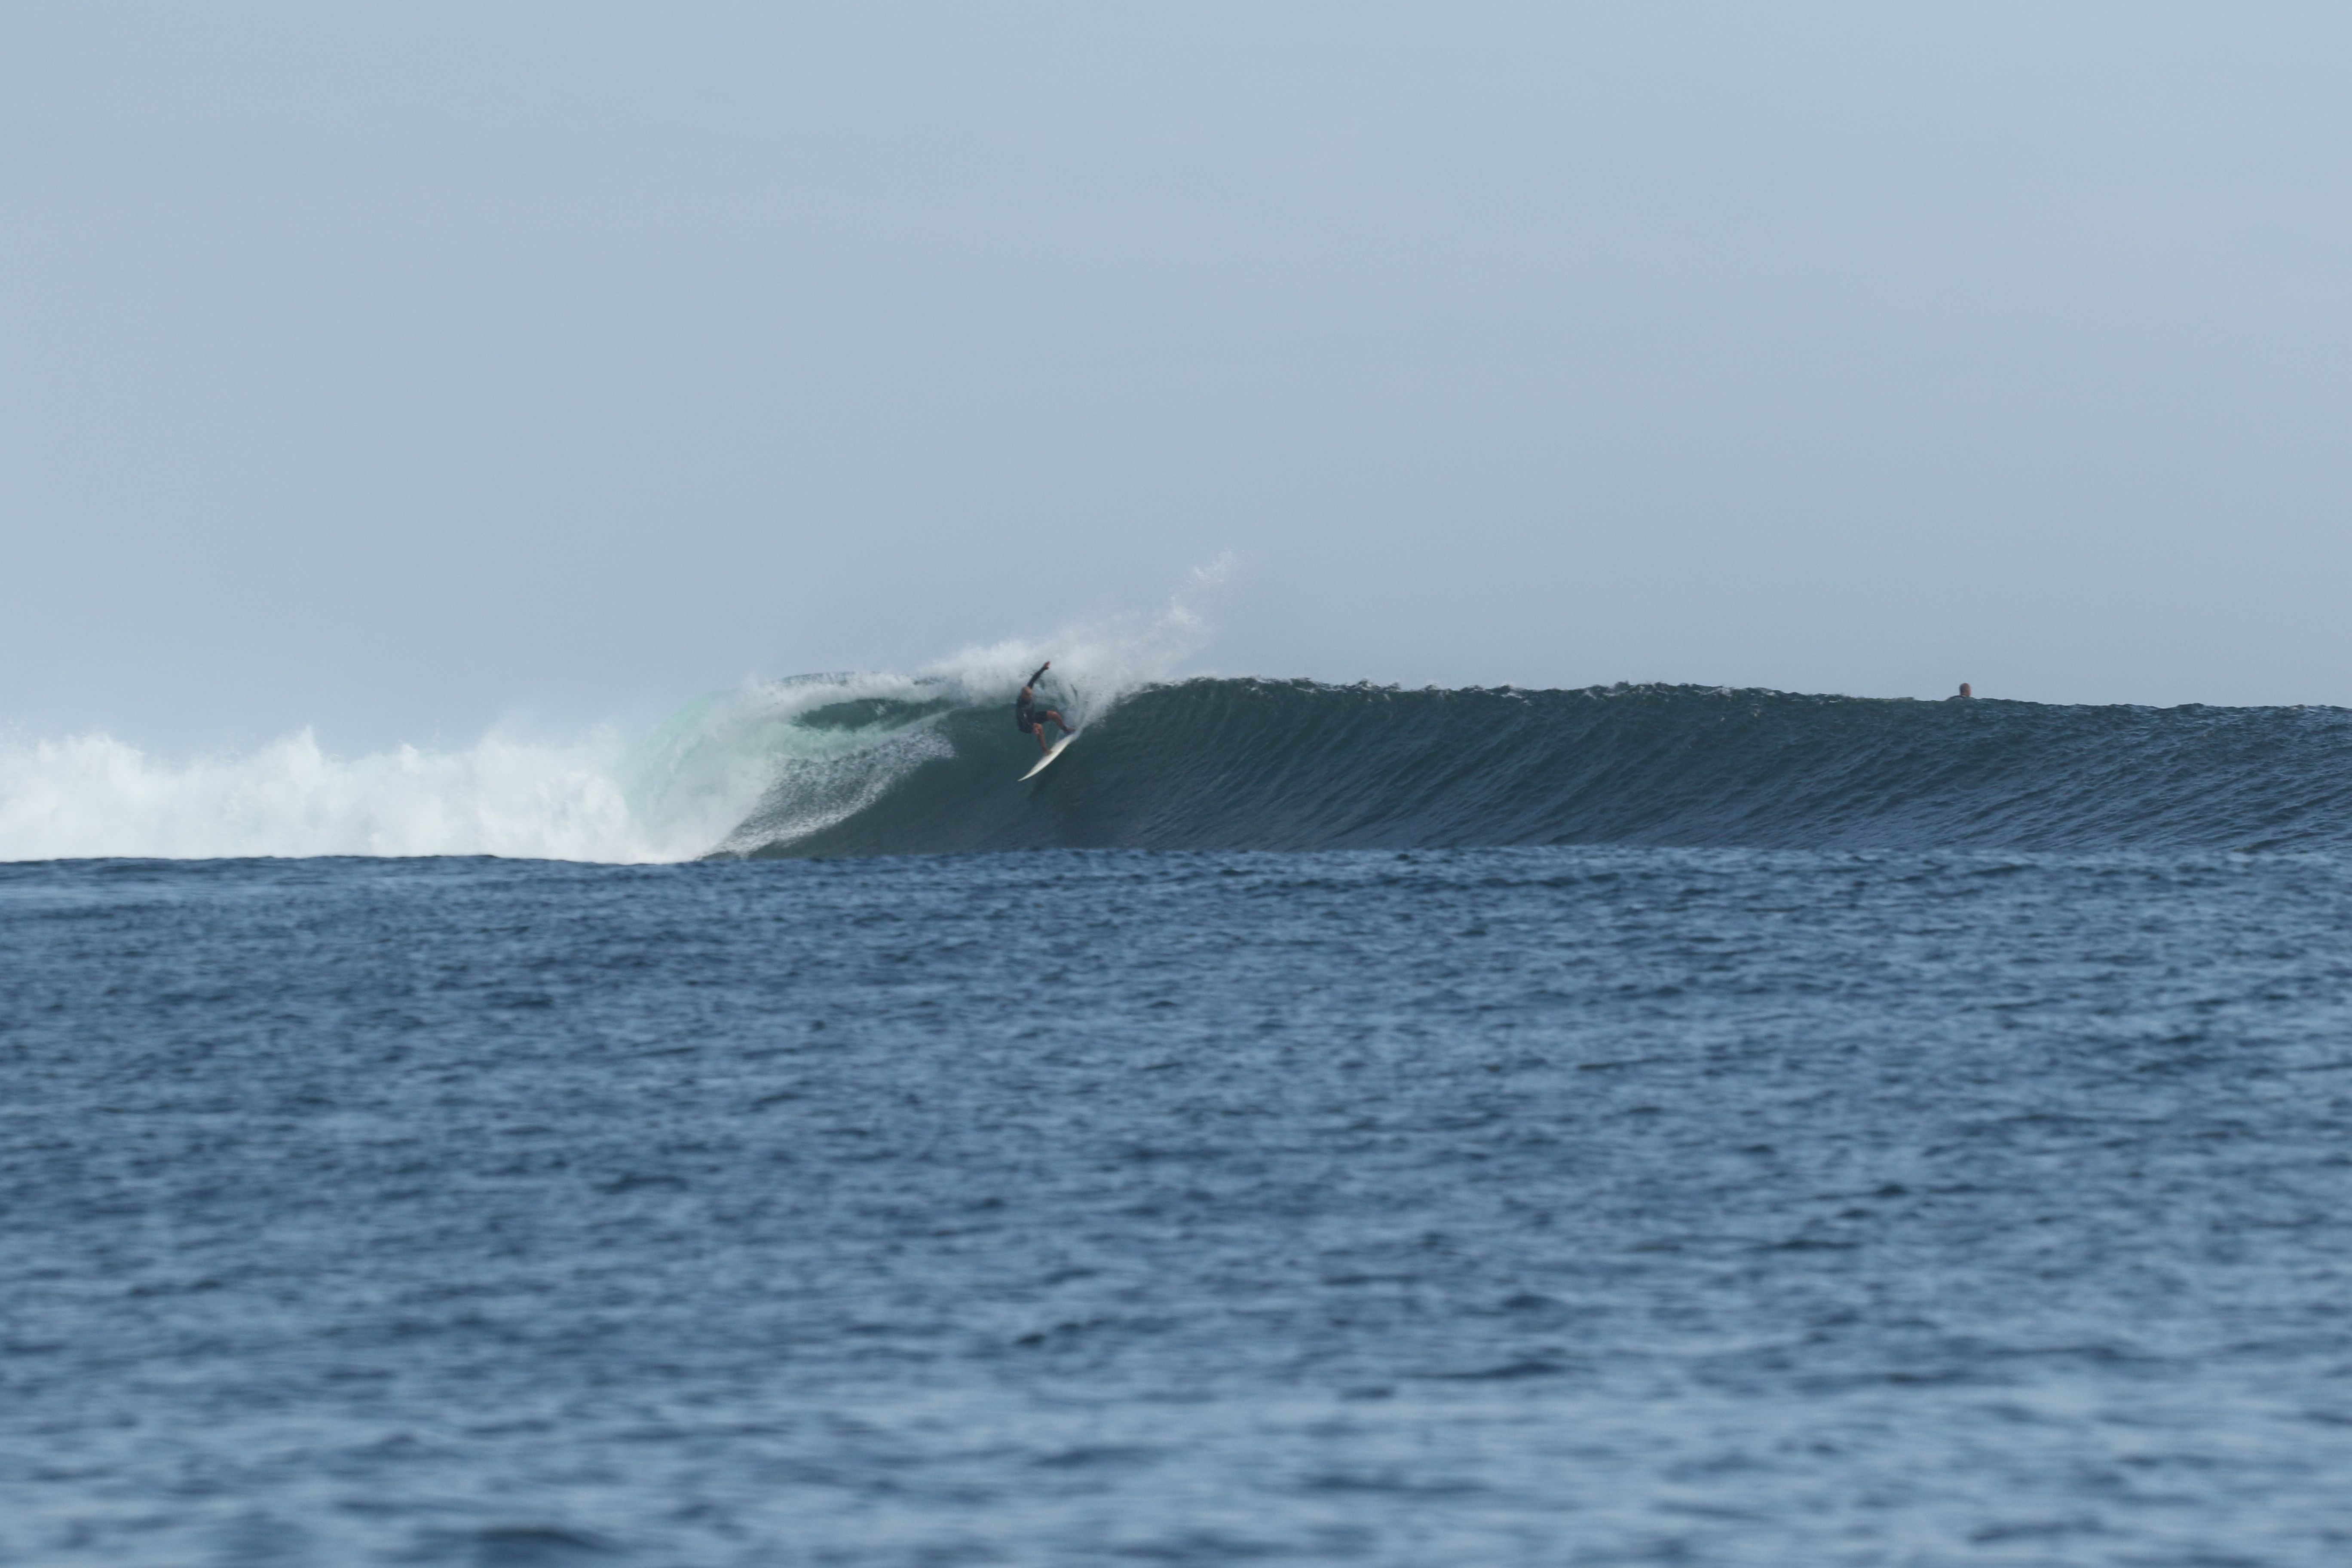 G-Land : Recommended Surfing Spot in the World